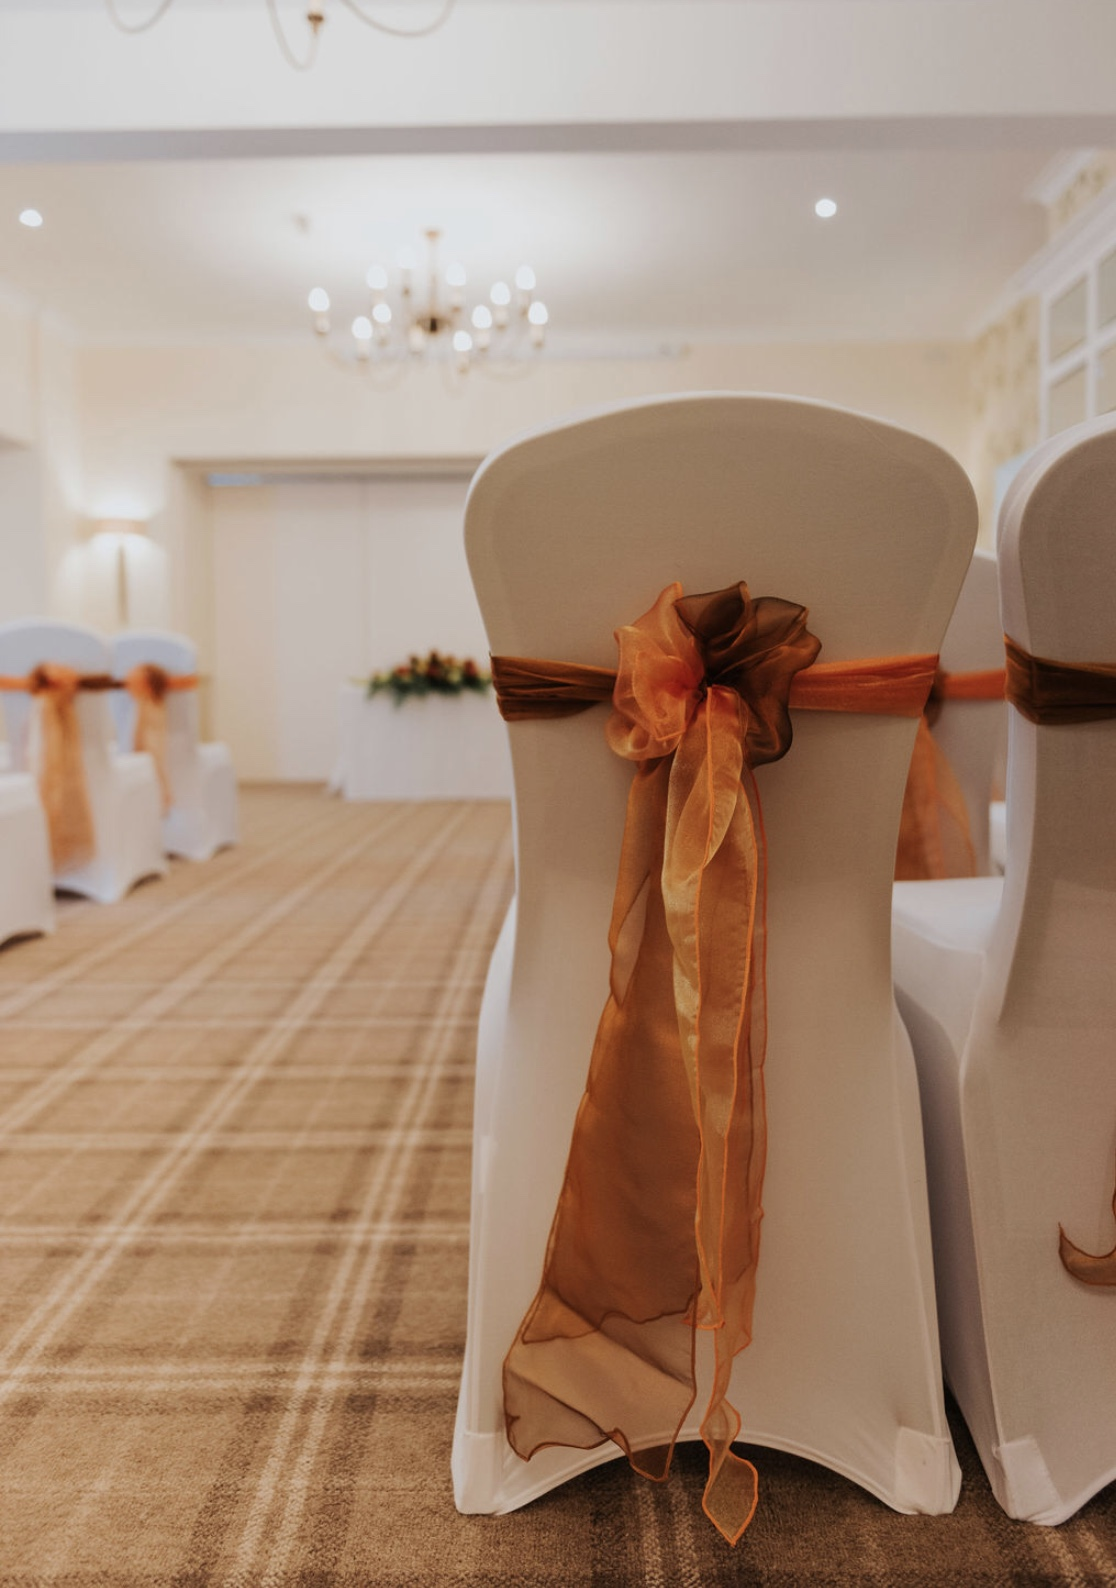 Shimmering organza sashes in golds and rusts to decorate the ceremony venue